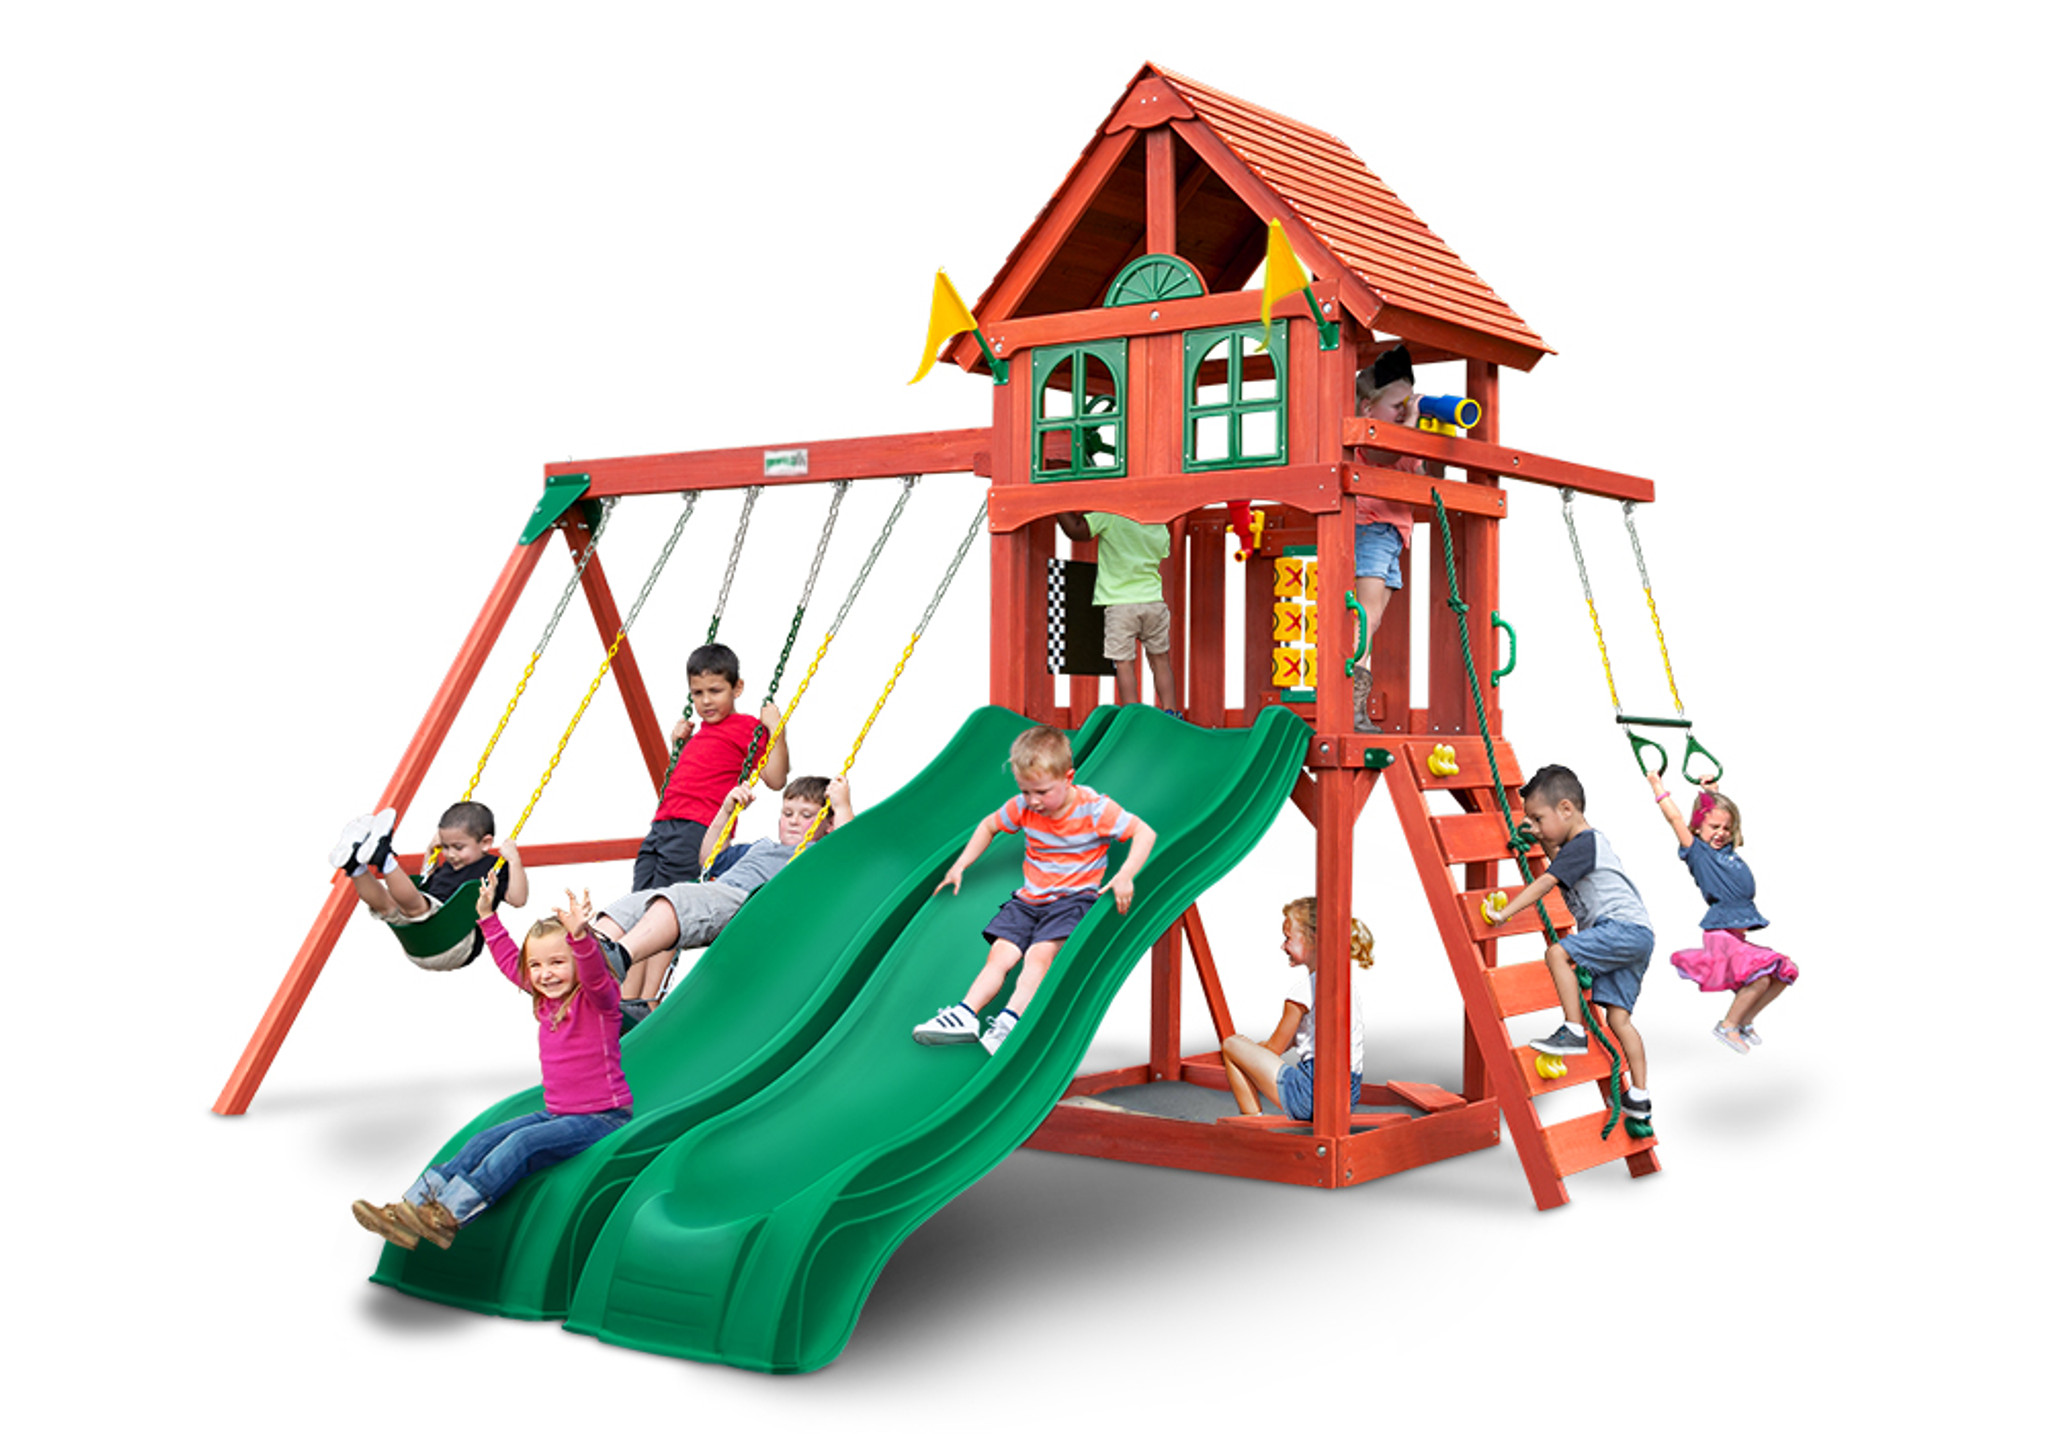 Front view of Adventure Wave Play Set from Playnation play systems.